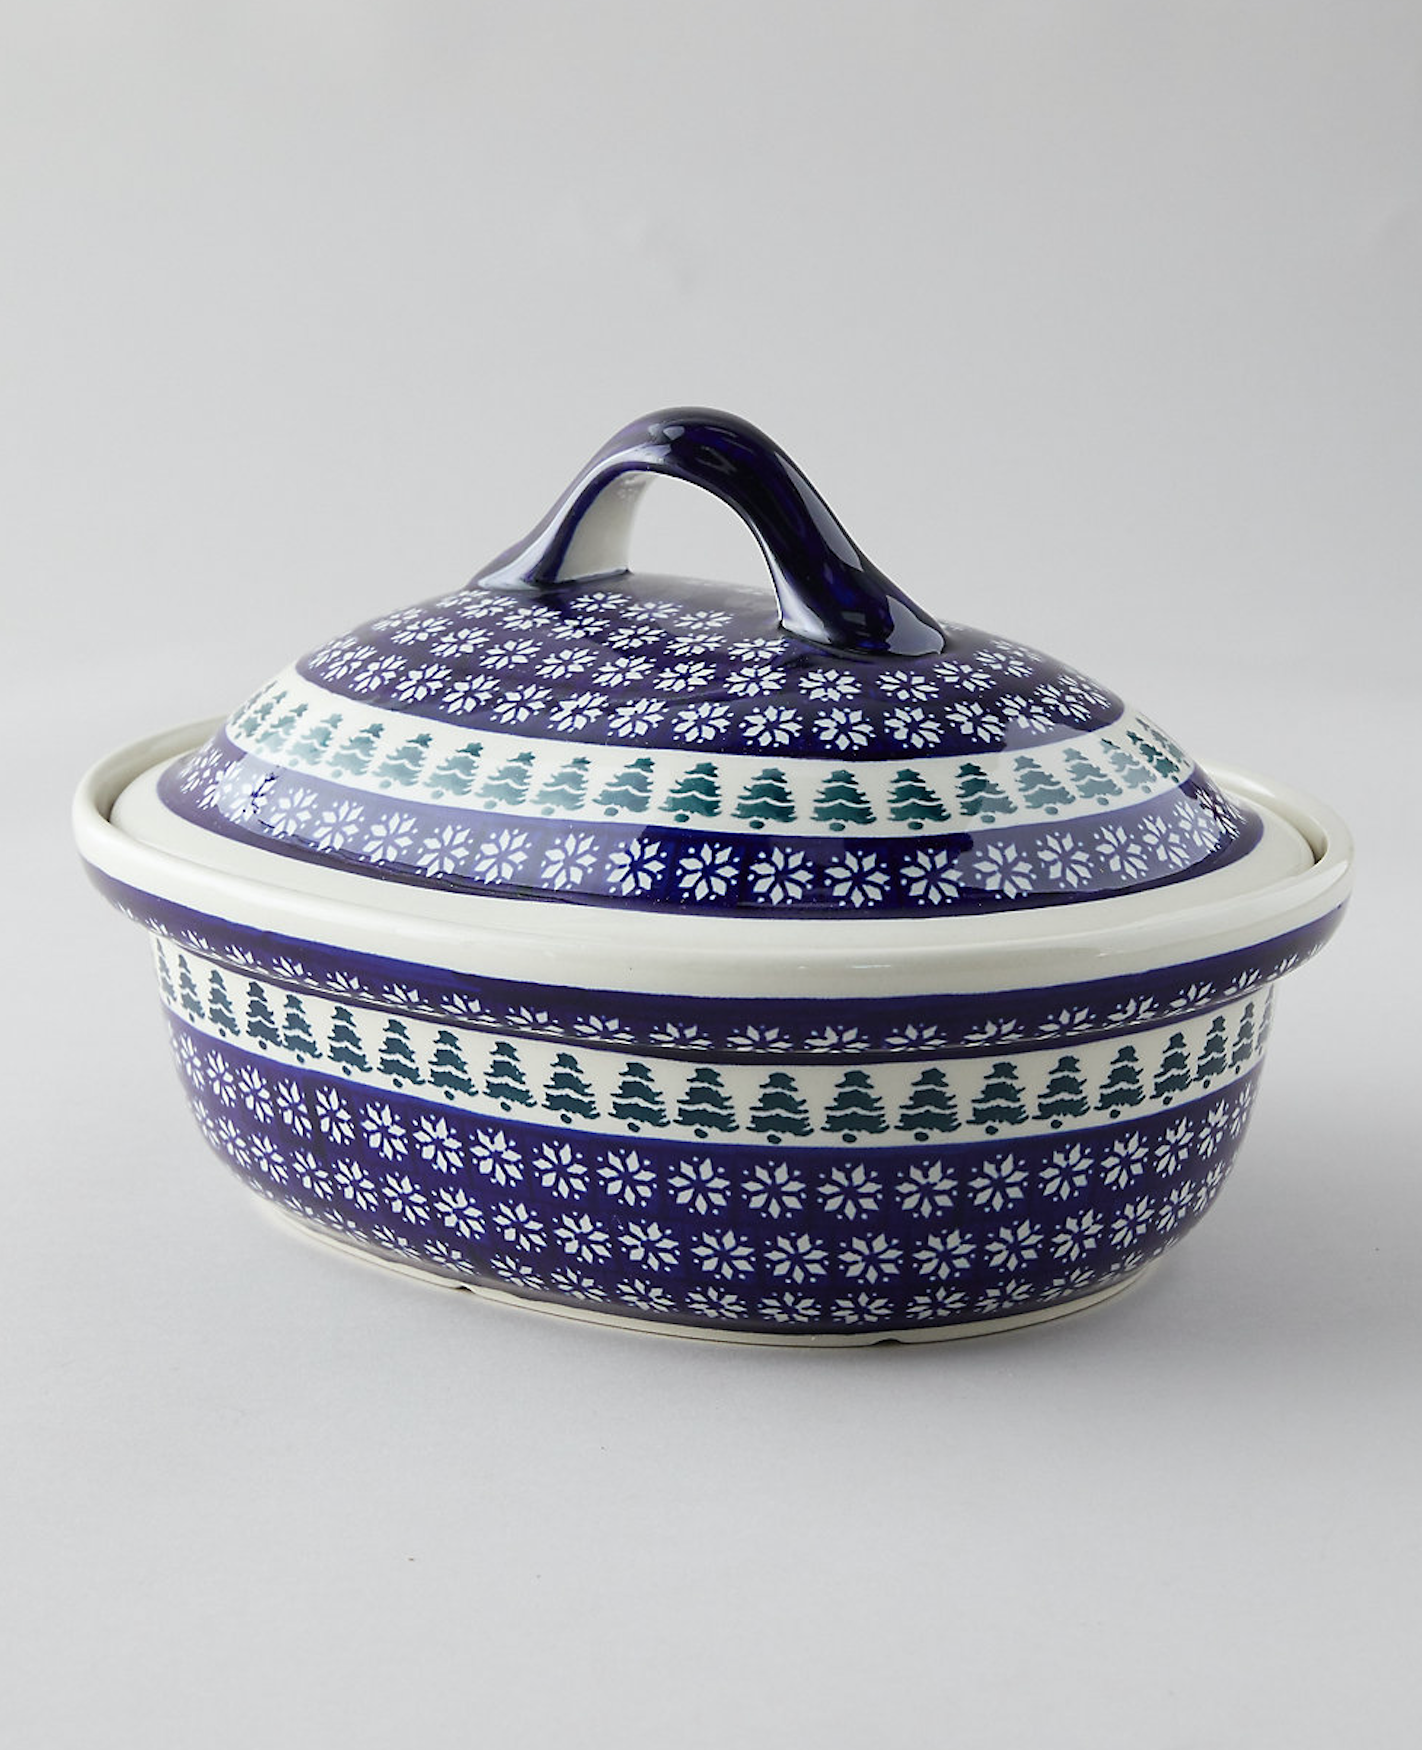 Evergreen Covered Baking Dish